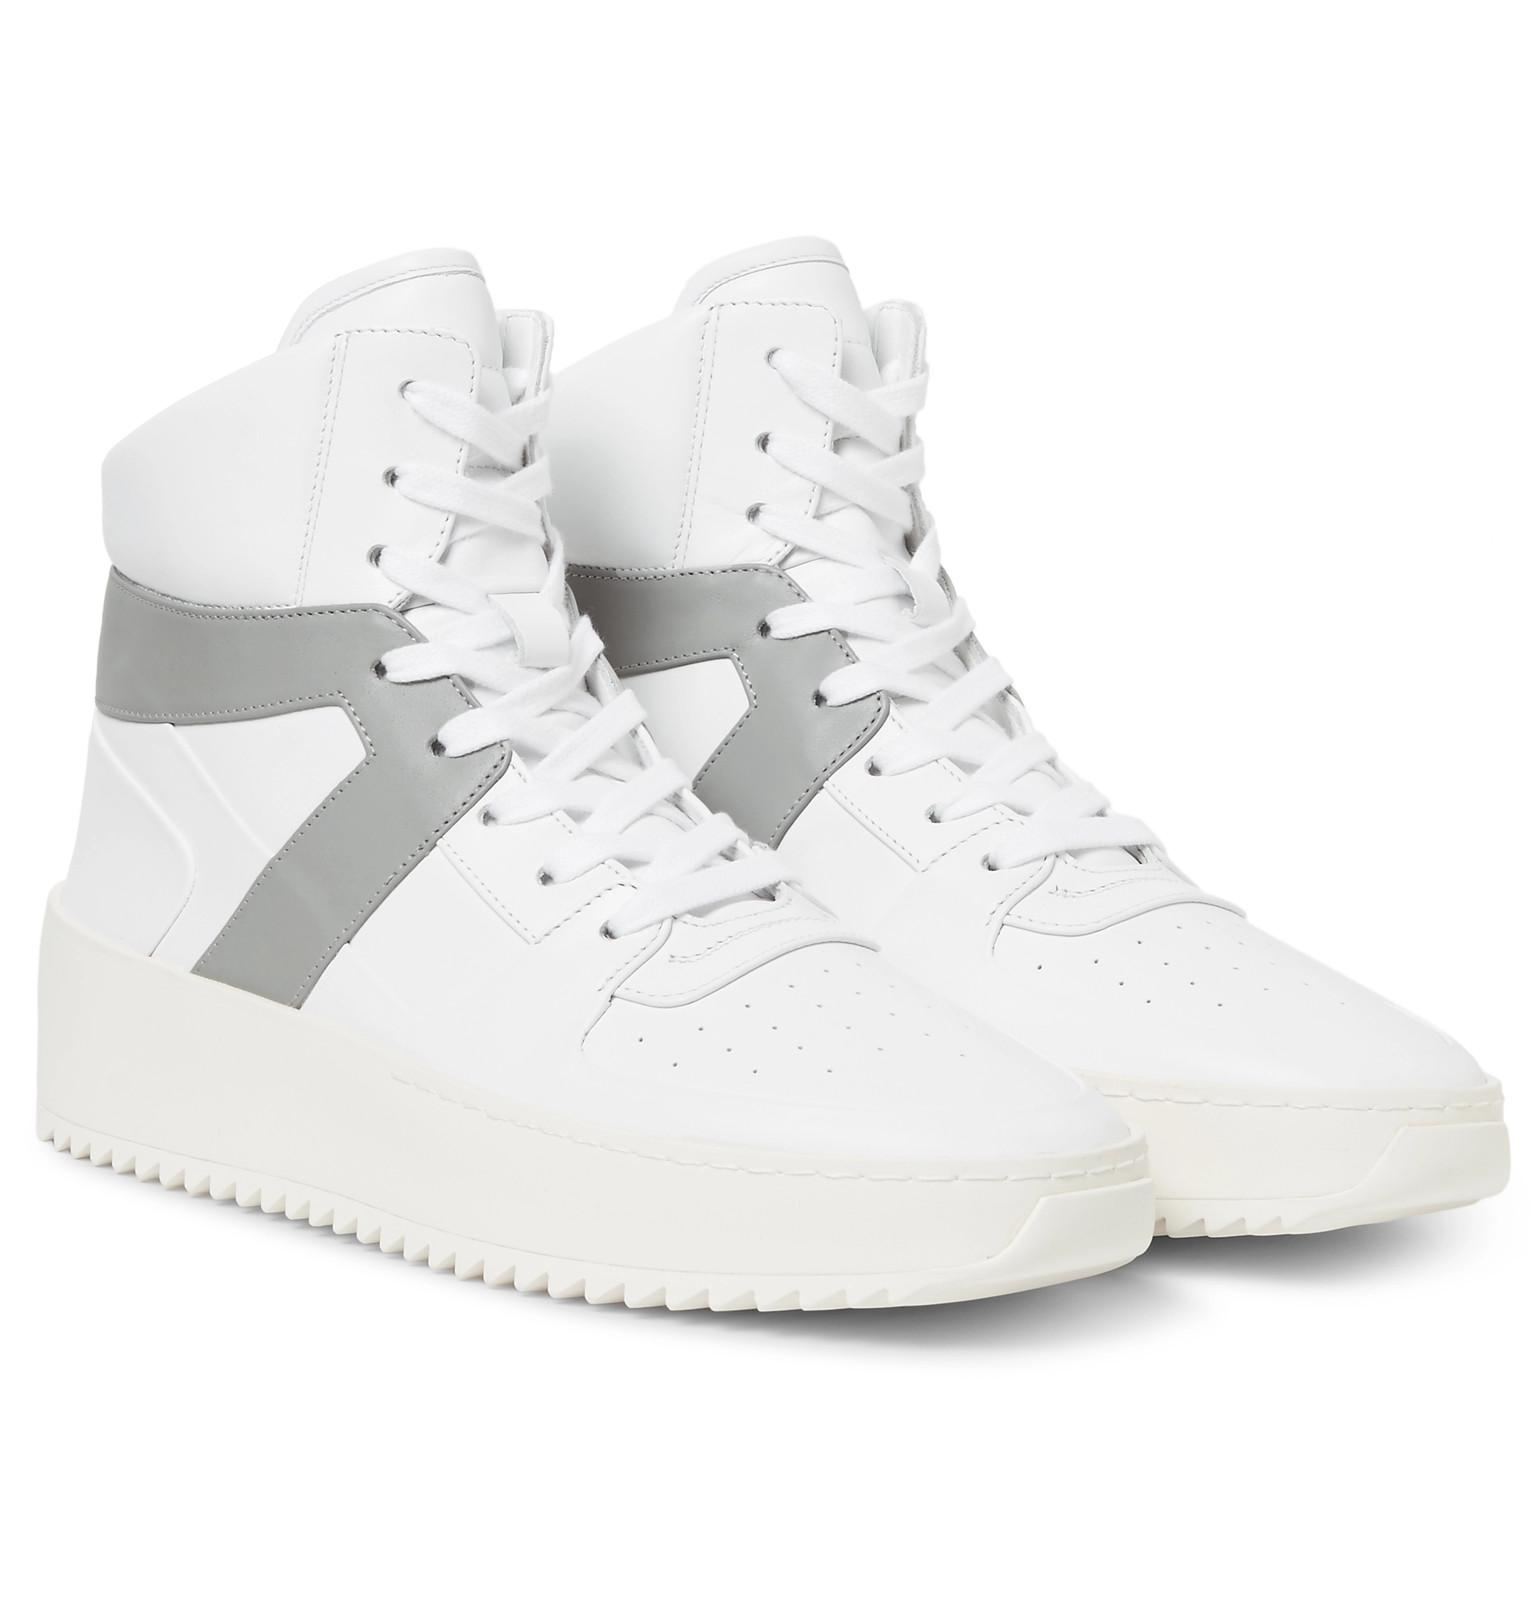 White and Grey Basketball High-Top Sneakers Fear of God xz3Nrs